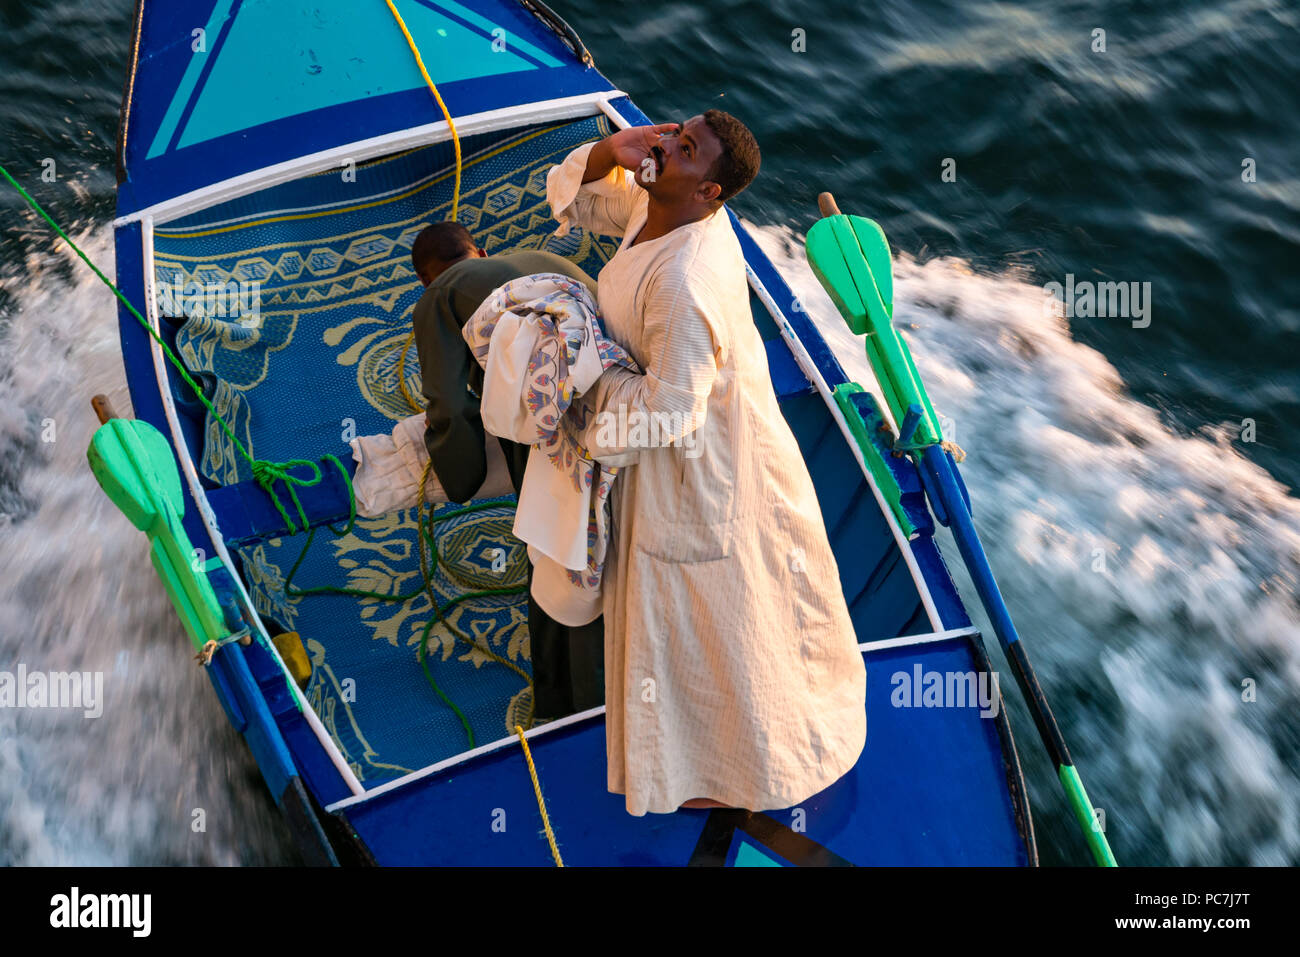 Local Egyptian men hawkers in small wooden boat tied to cruise ship selling linen products, River Nile, Egypt, Africa - Stock Image